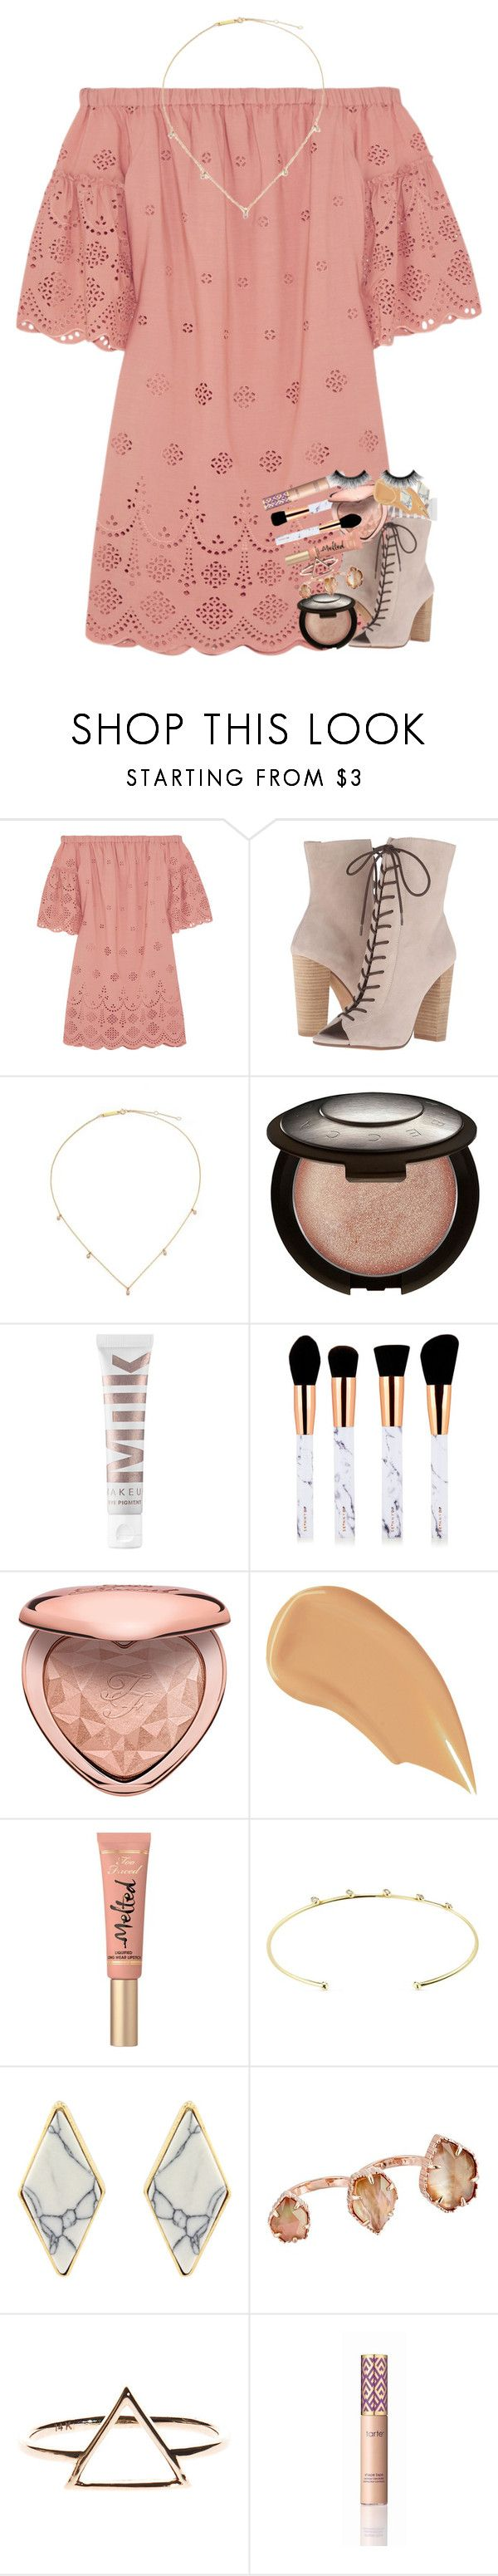 """""""the most dangerous woman of all is the one who refuses to rely on your sword to save herself because she carries her own."""" by ellaswiftie13 on Polyvore featuring Madewell, Kristin Cavallari, Zoë Chicco, Becca, MILK MAKEUP, NARS Cosmetics, Too Faced Cosmetics, mizuki, Kendra Scott and tarte"""